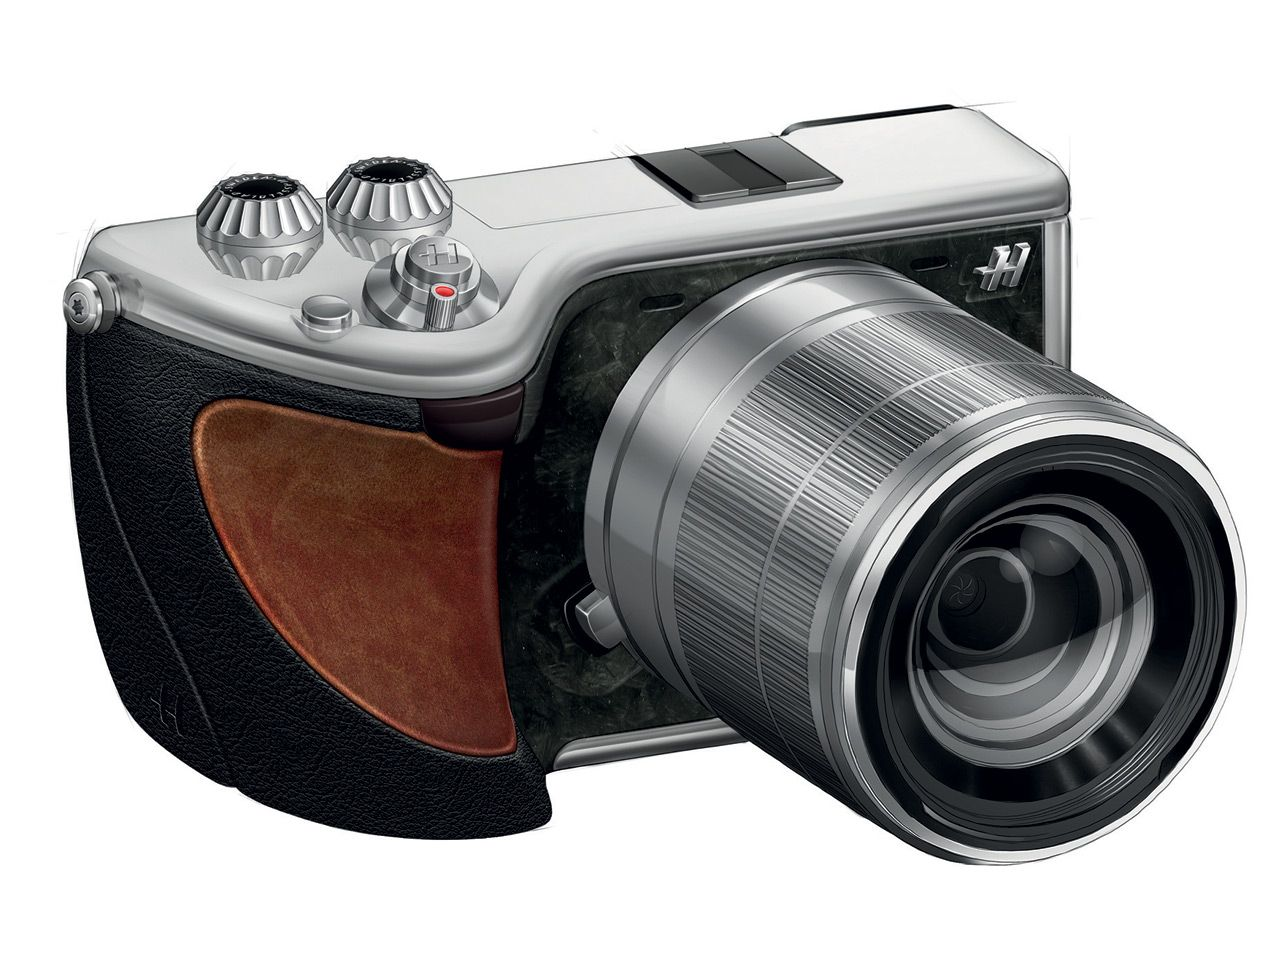 Hasselbladleather - Hasselblad 24MP Lunar - an 'ultimate luxury' mirrorless camera